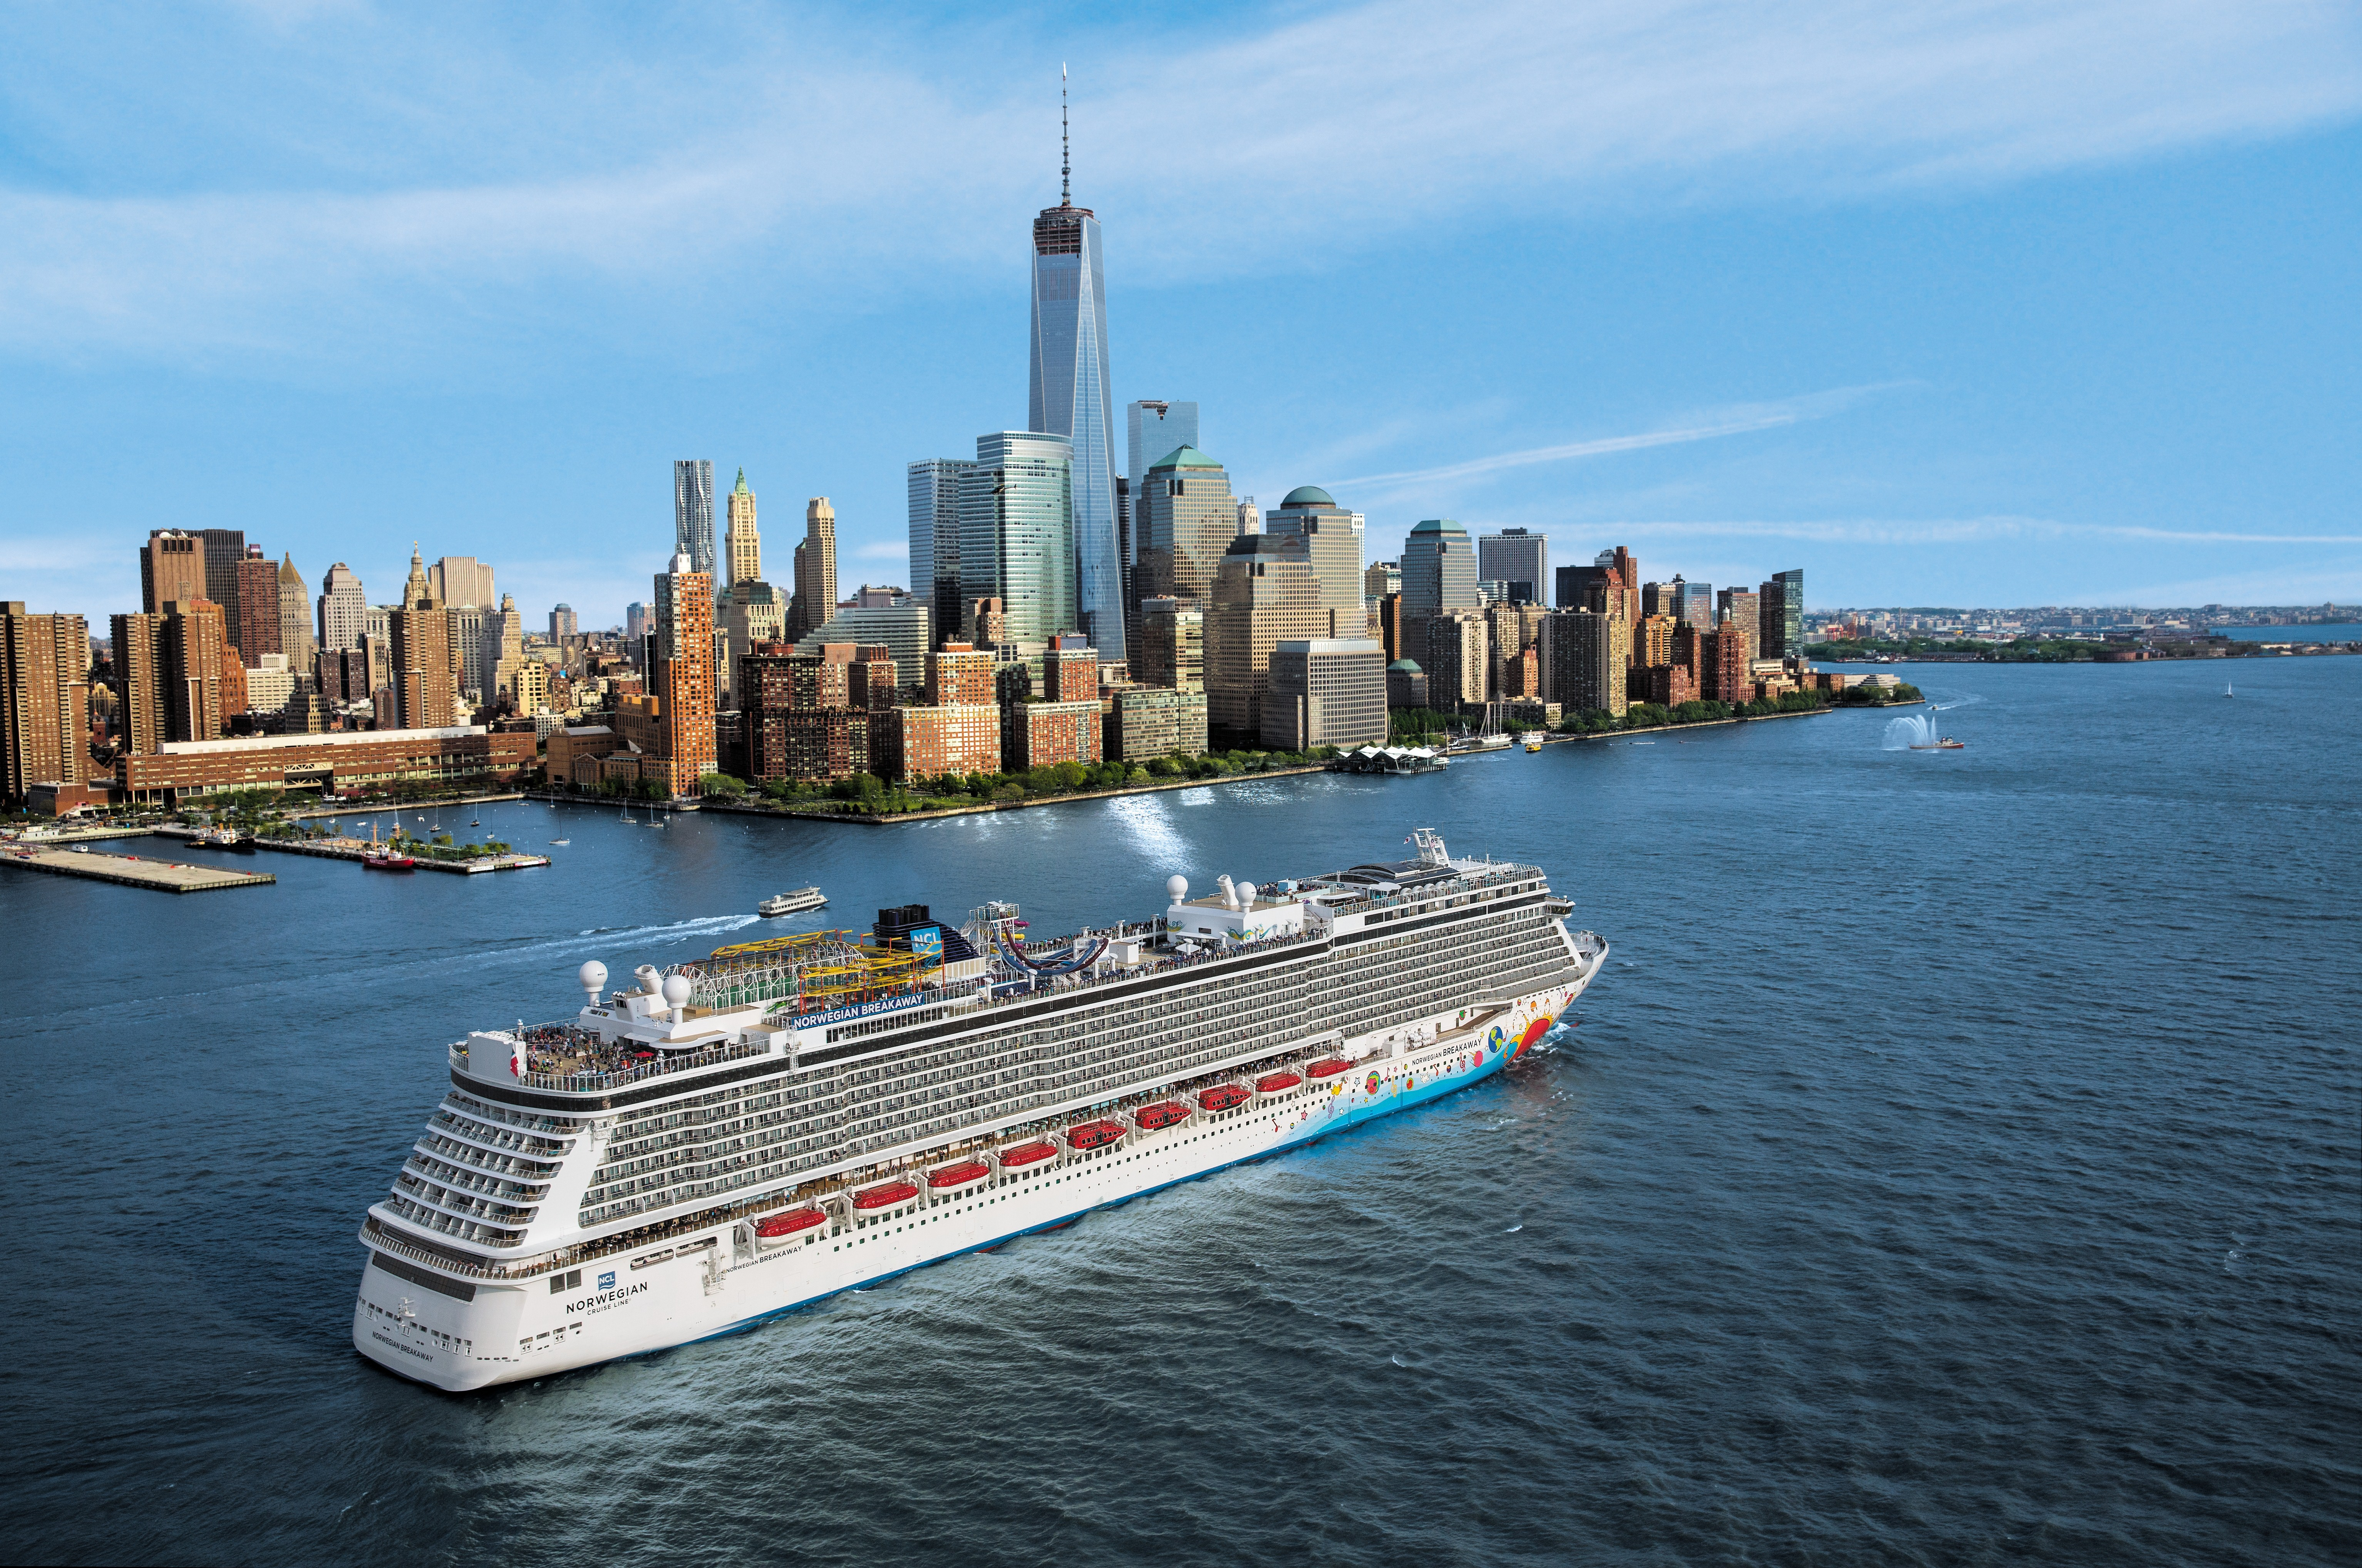 Explore The Beauty Of Caribbean: Sail Away With MyTime On NCL's Breakaway